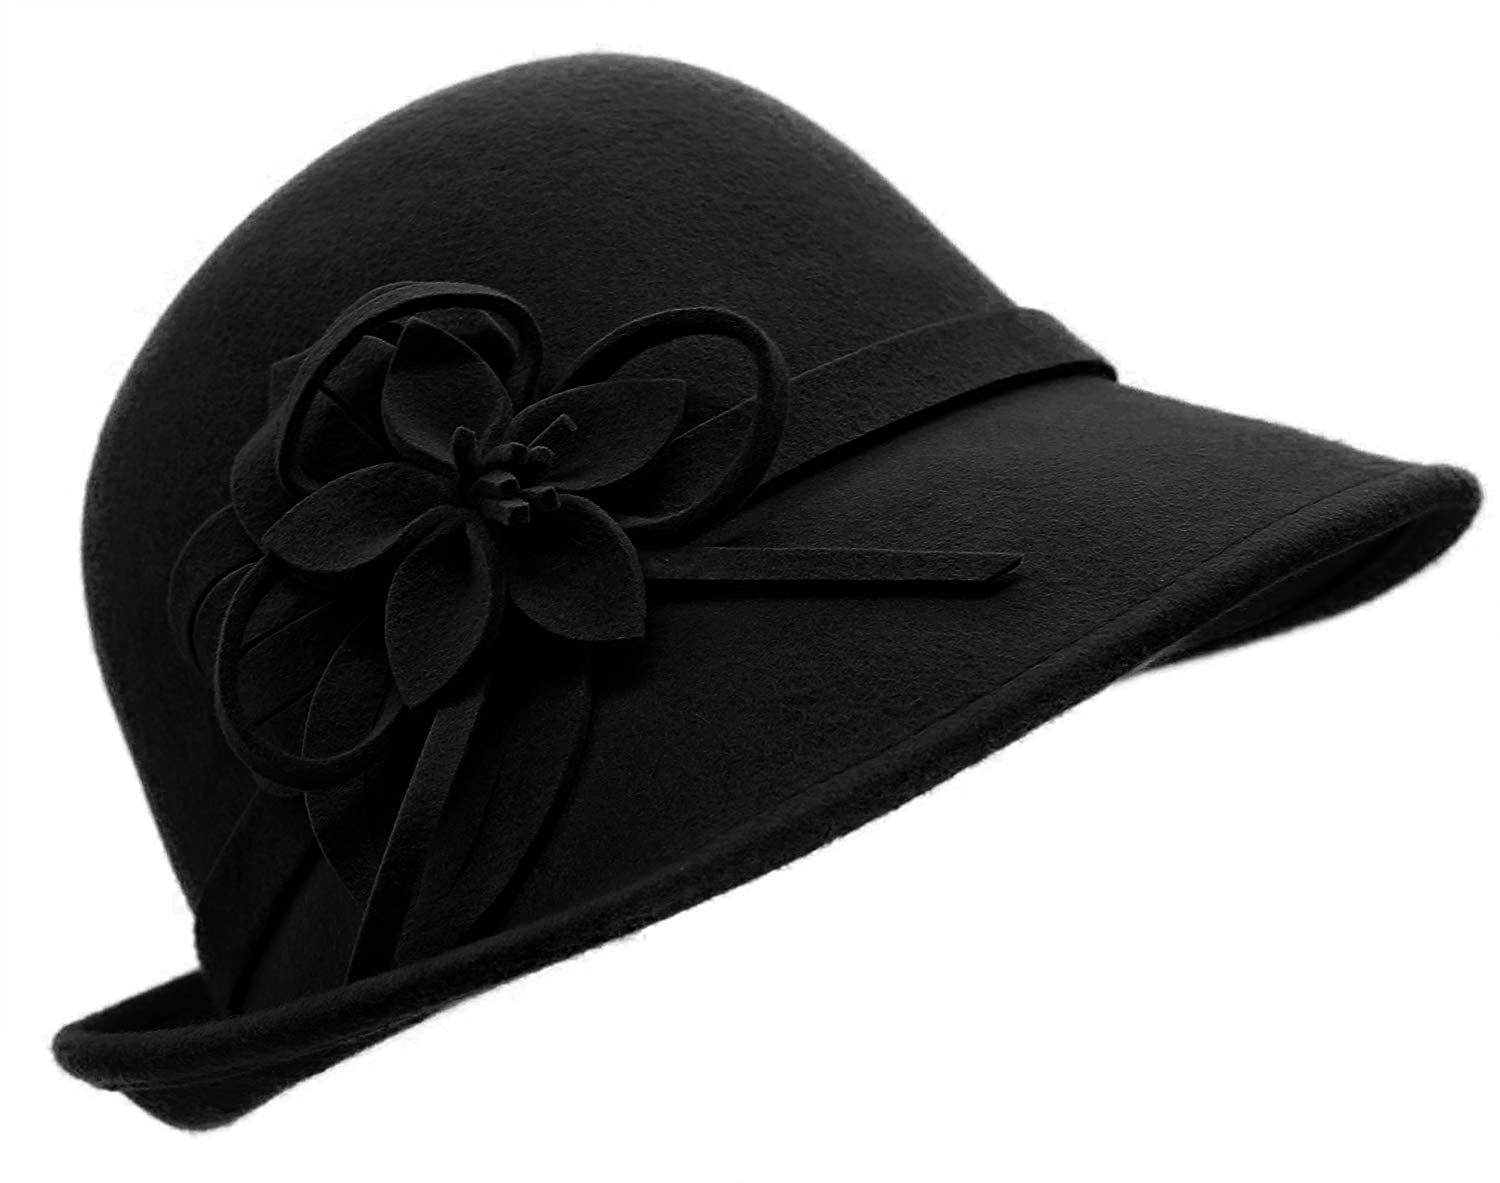 1920s Style Hats Bellady Women Solid Color Winter Hat 100% Wool Cloche Bucket with Bow Accent $20.99 AT vintagedancer.com